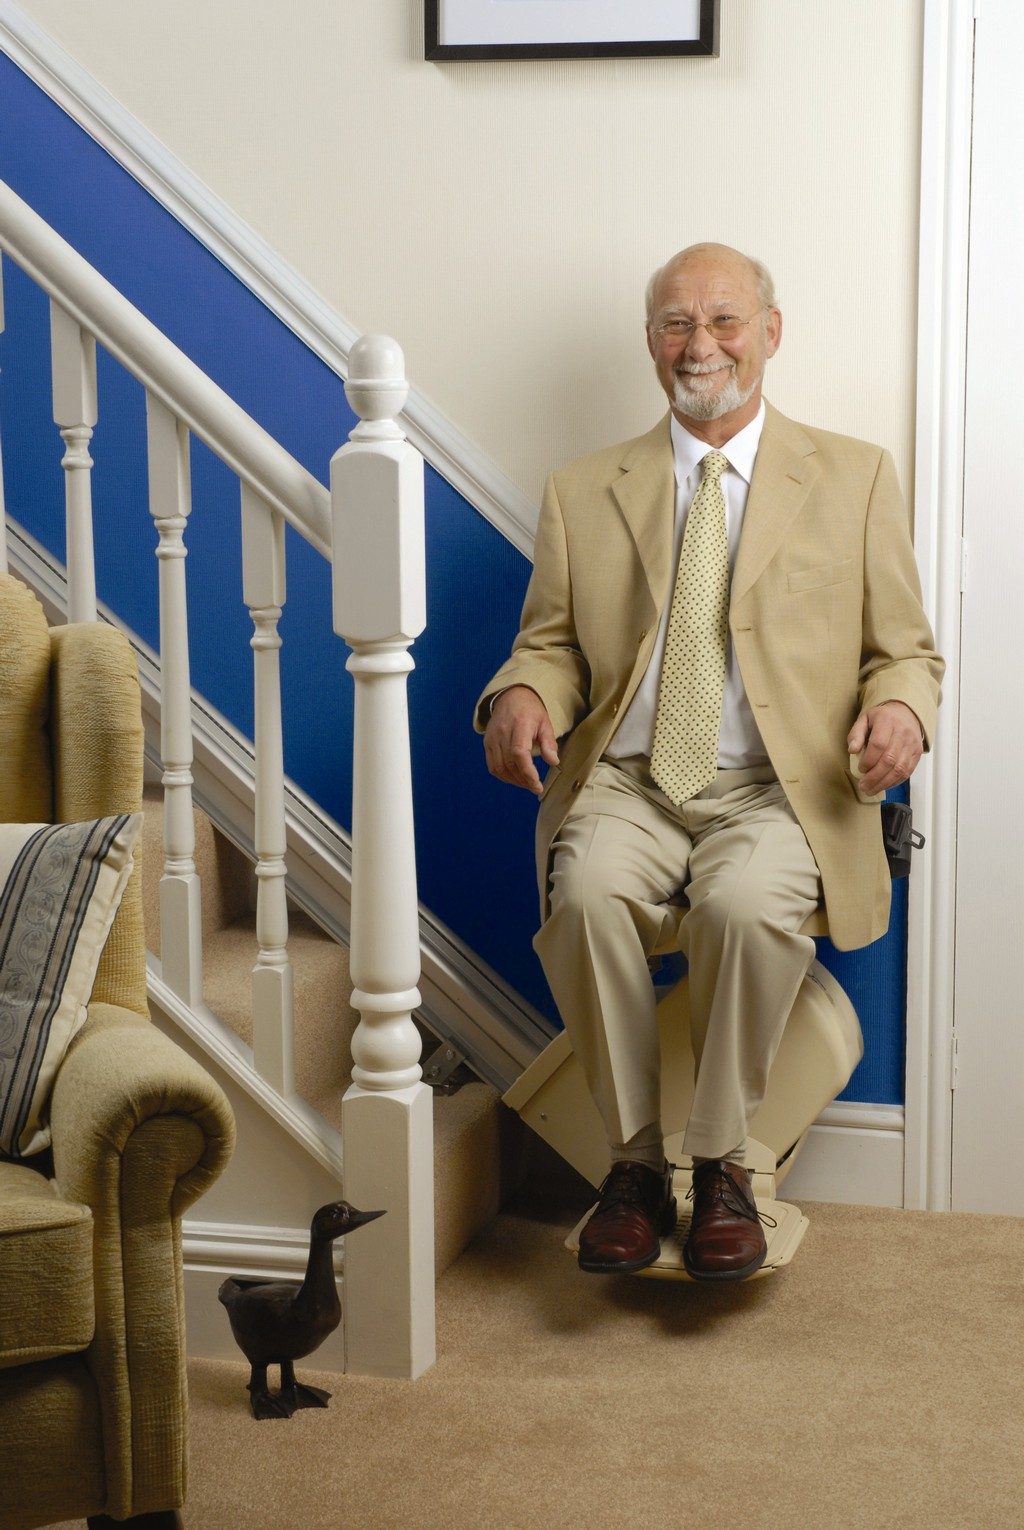 electric lift stair, bruno stair lifts, sterling stairlift, acorn stair lifts